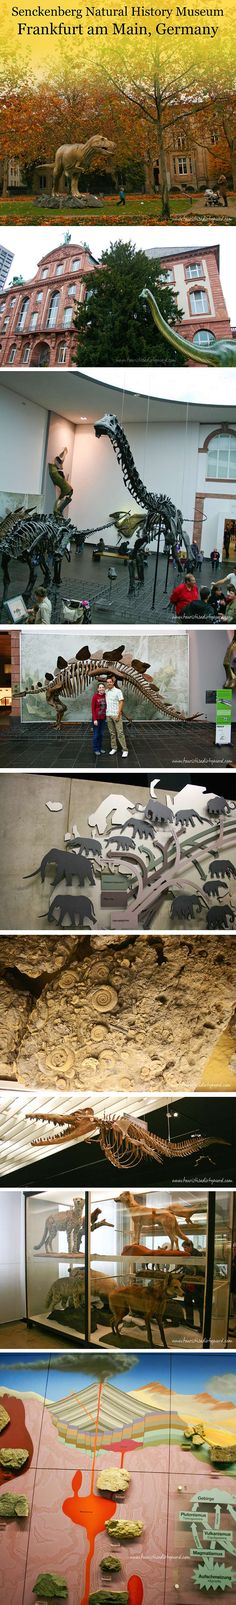 Senckenberg Natural History Museum Overview Guide with Photos • Germany Travel